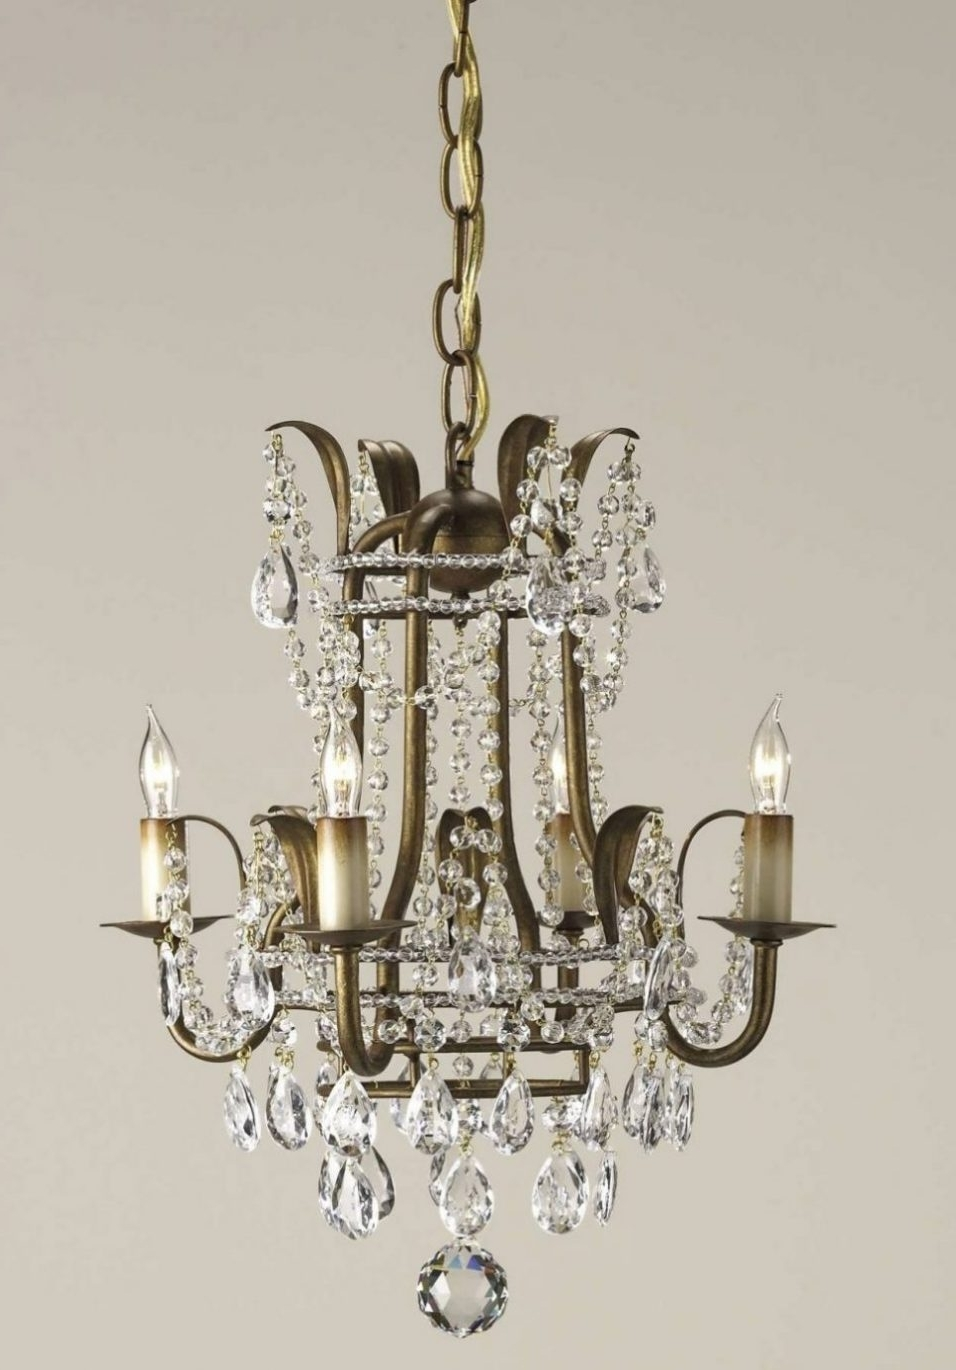 Latest Lighting : Vintage Modern Chandelier Contemporary Crystal Chandelier With Regard To Modern Wrought Iron Chandeliers (View 3 of 15)